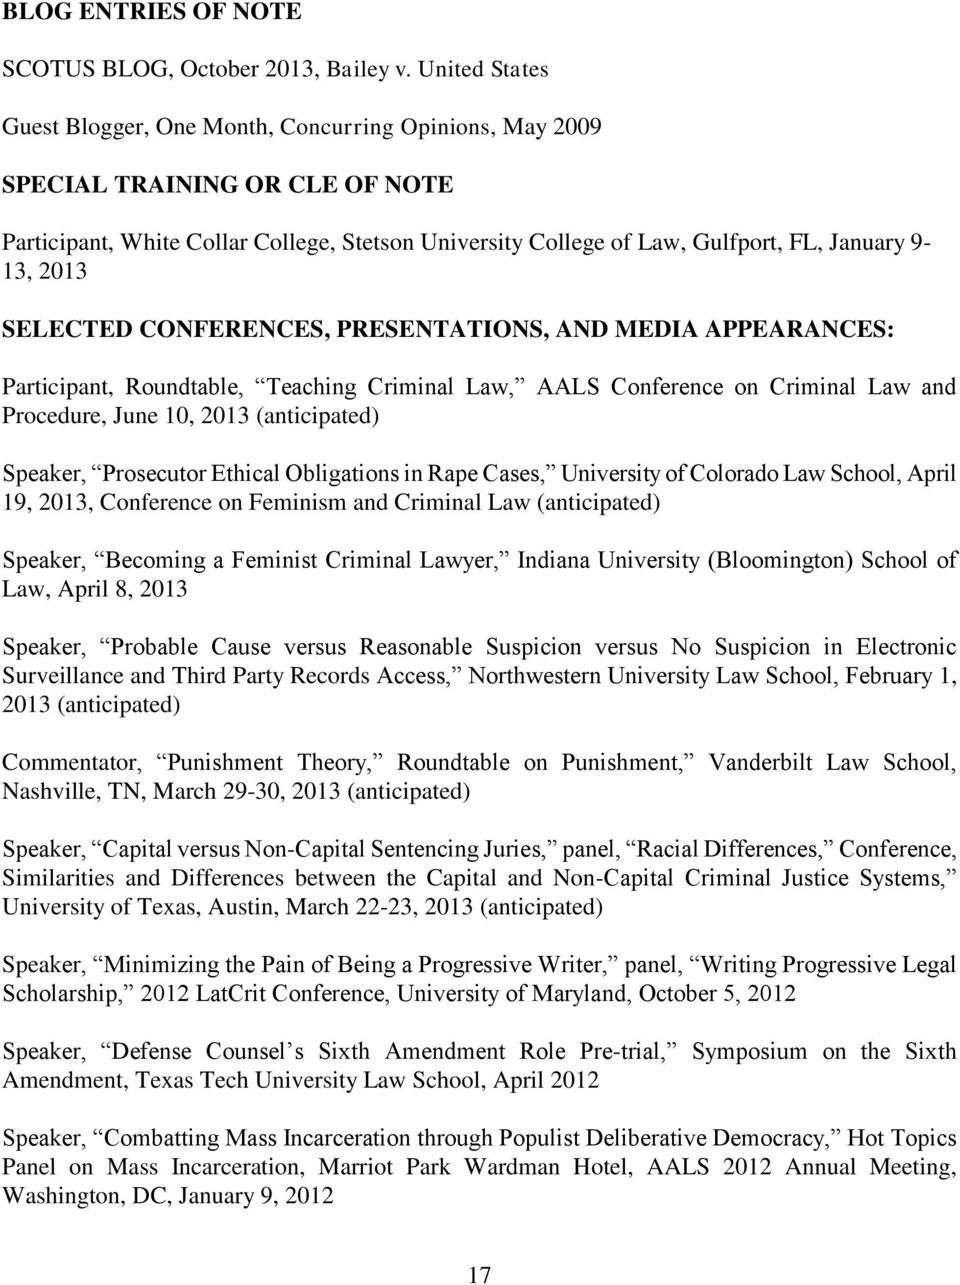 2013 SELECTED CONFERENCES, PRESENTATIONS, AND MEDIA APPEARANCES: Participant, Roundtable, Teaching Criminal Law, AALS Conference on Criminal Law and Procedure, June 10, 2013 (anticipated) Speaker,